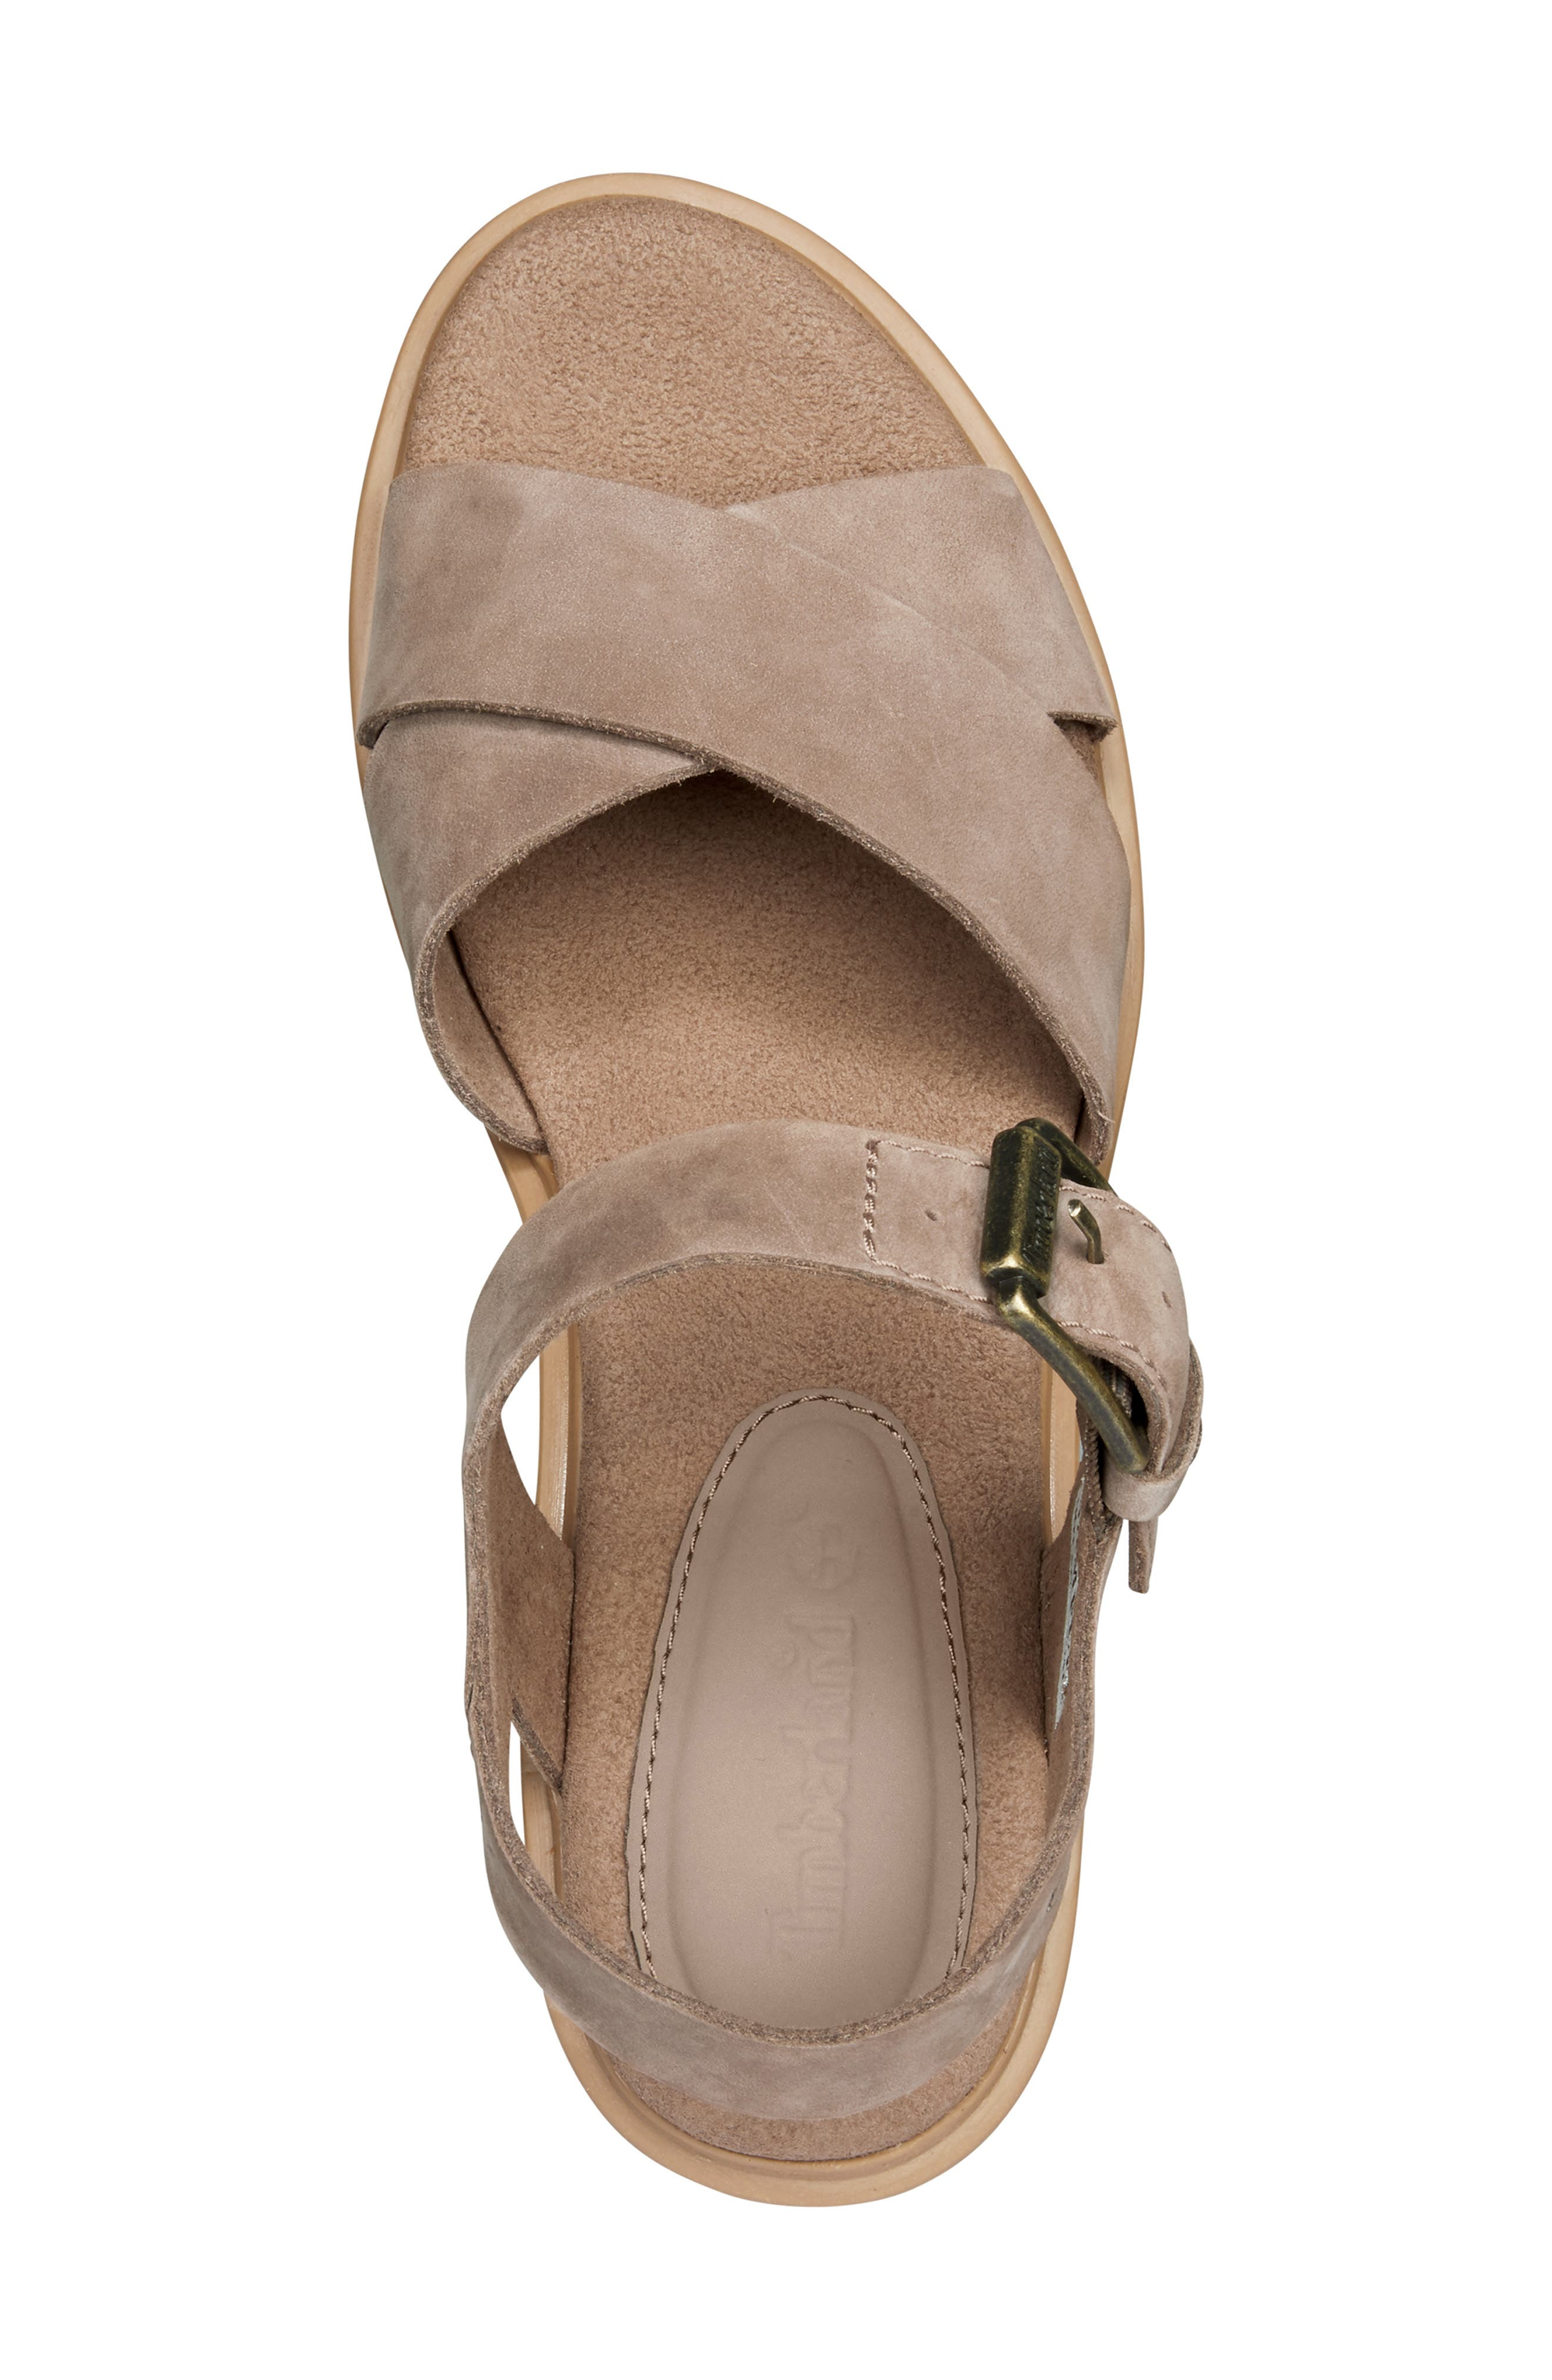 TIMBERLAND,                             Violet March Crisscross Sandal,                             Alternate thumbnail 4, color,                             TAUPE NUBUCK LEATHER